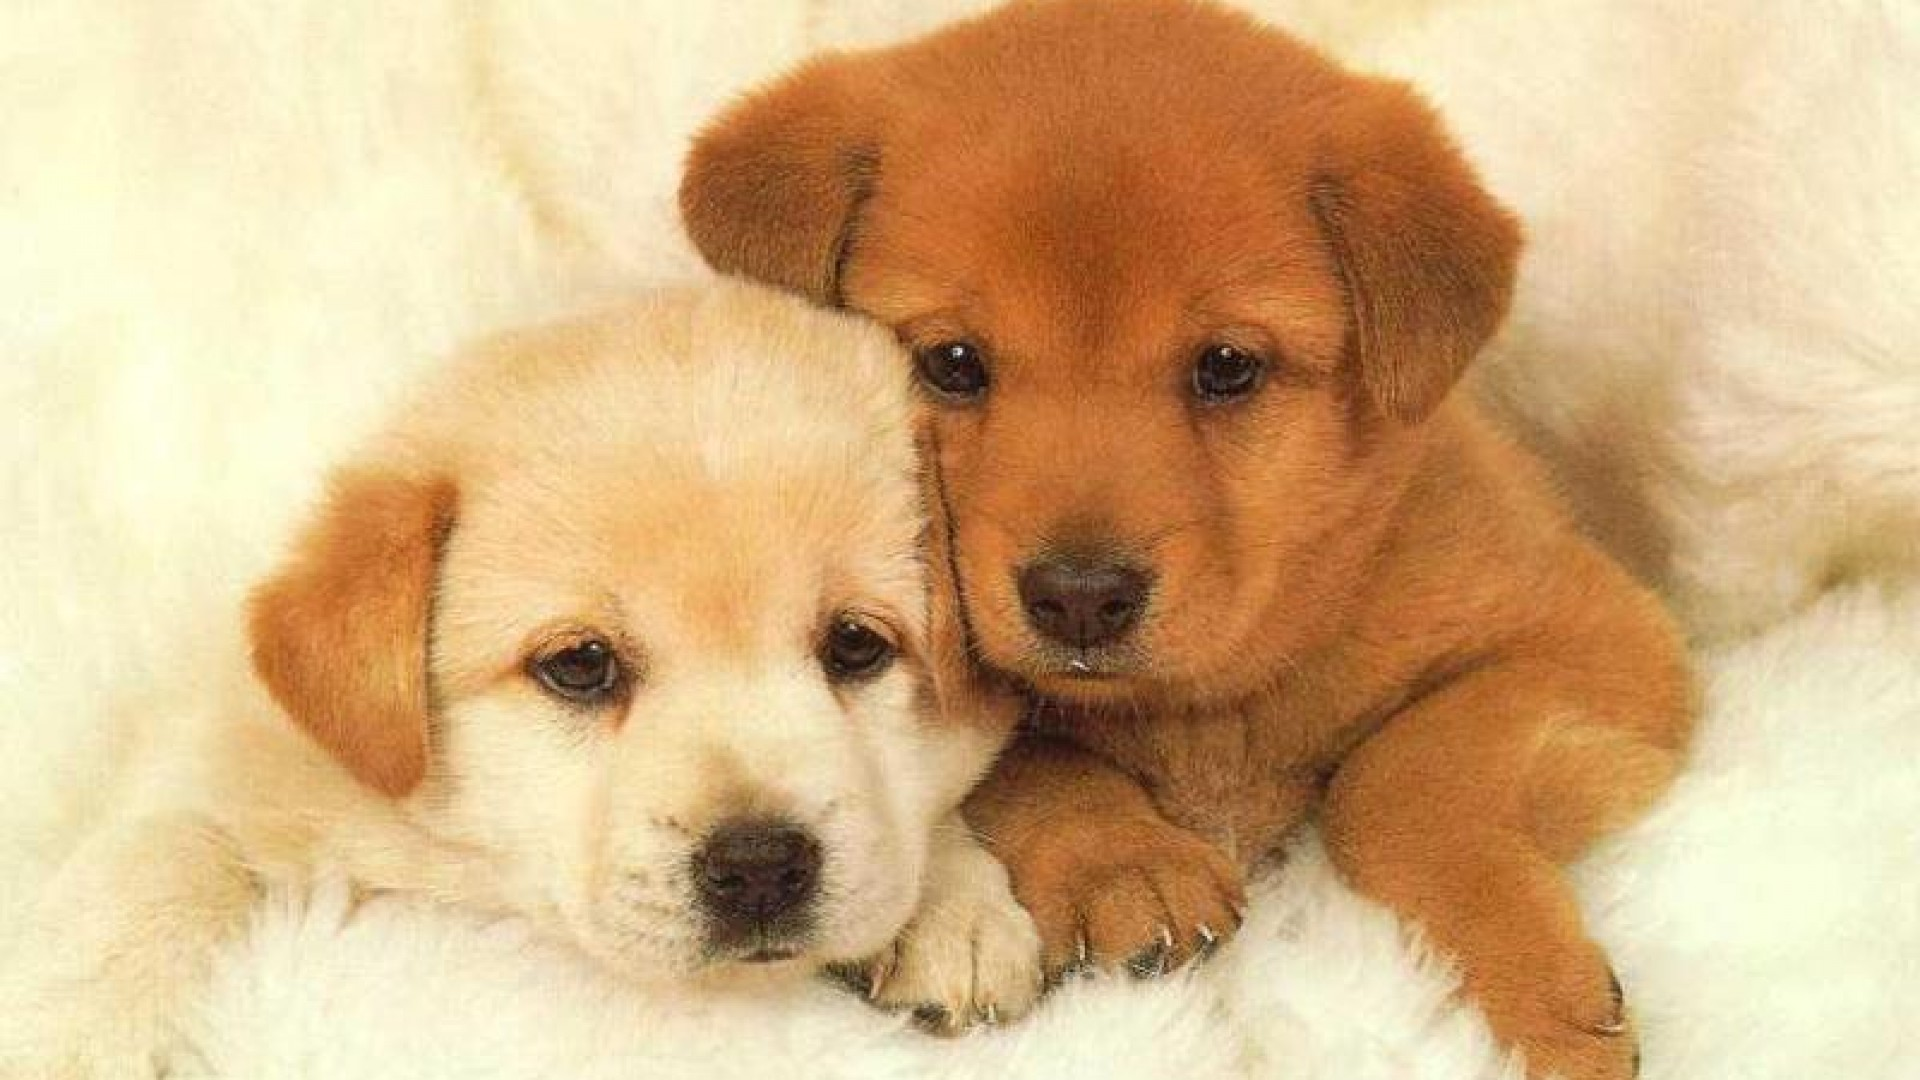 Cute Puppy Wallpaper Hd 1920x1080